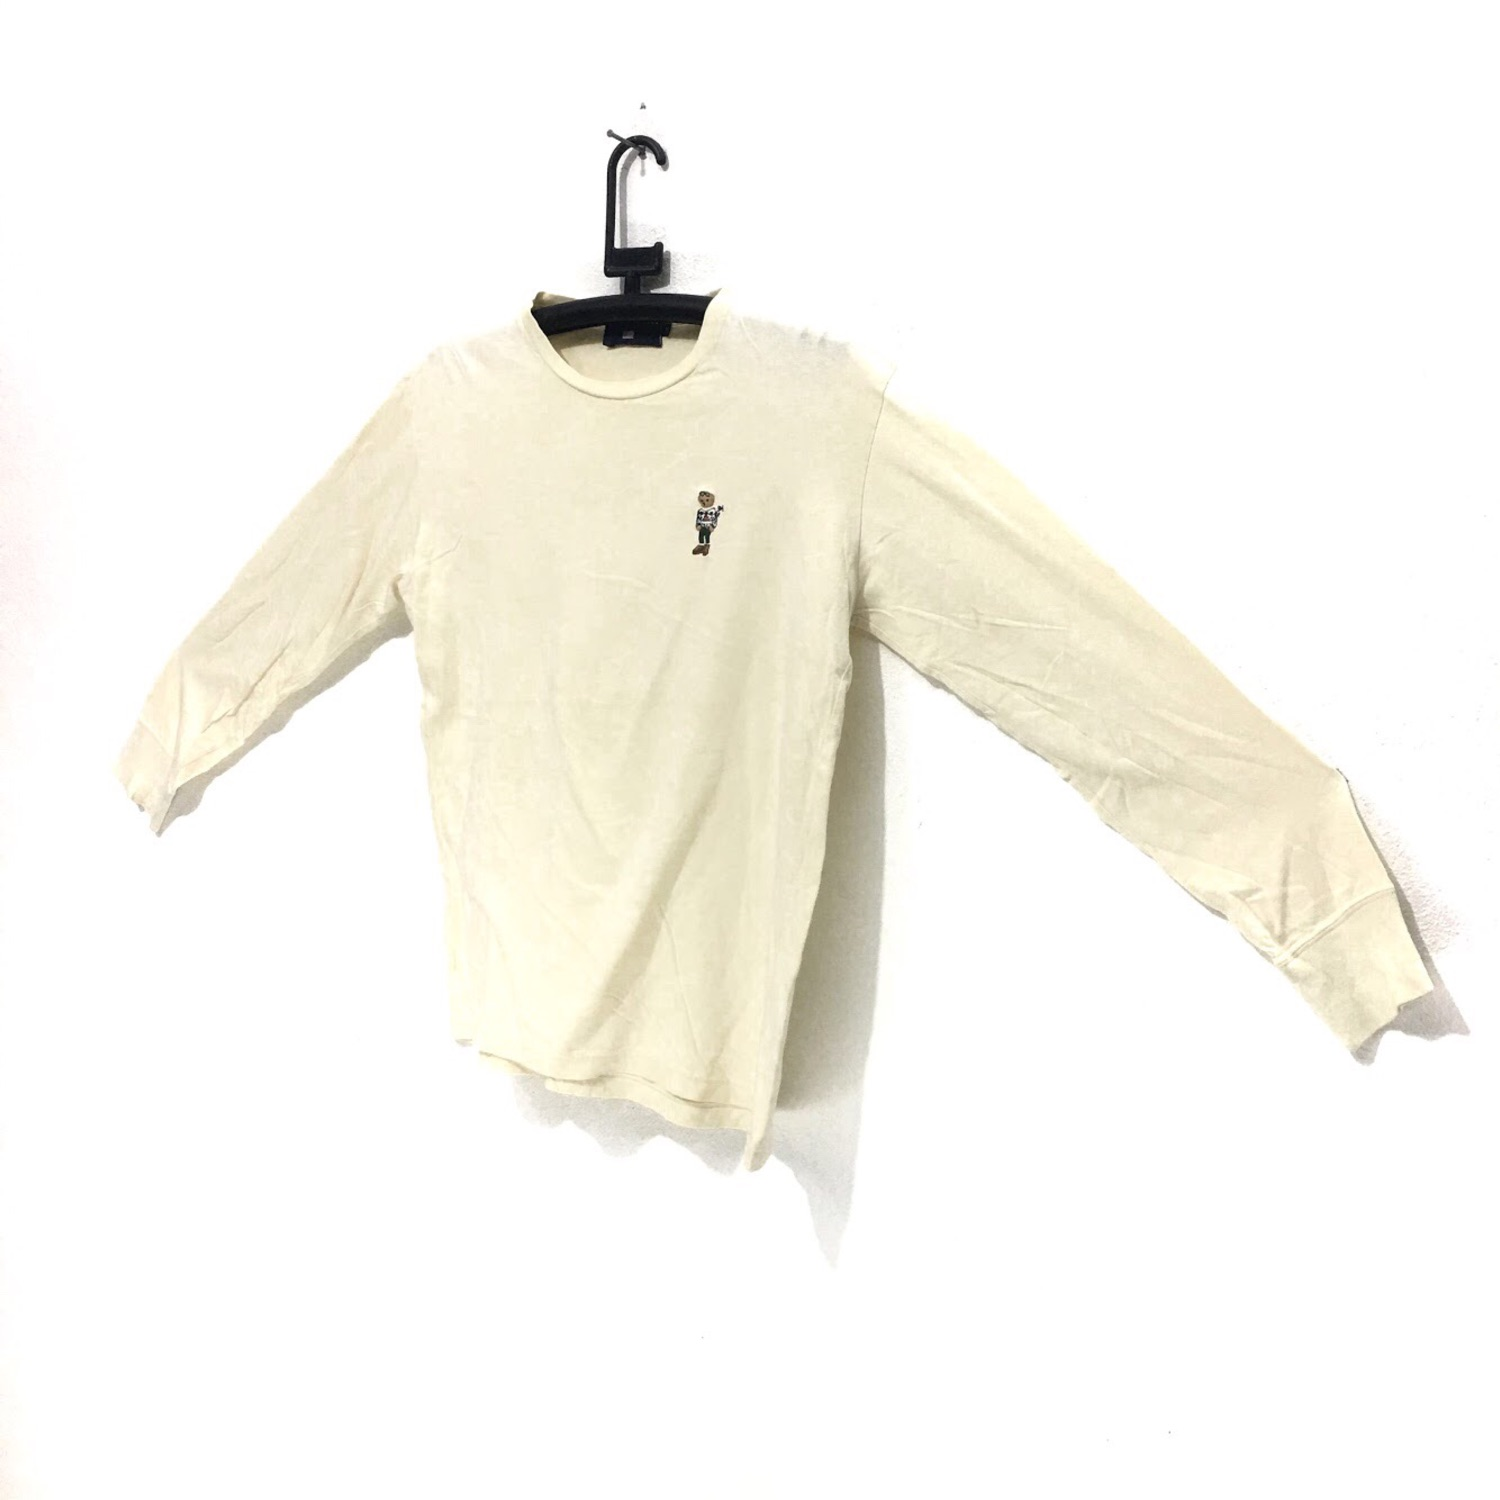 Vtg Polo Bear Ralph Lauren Tee Shirt Long Sleeve